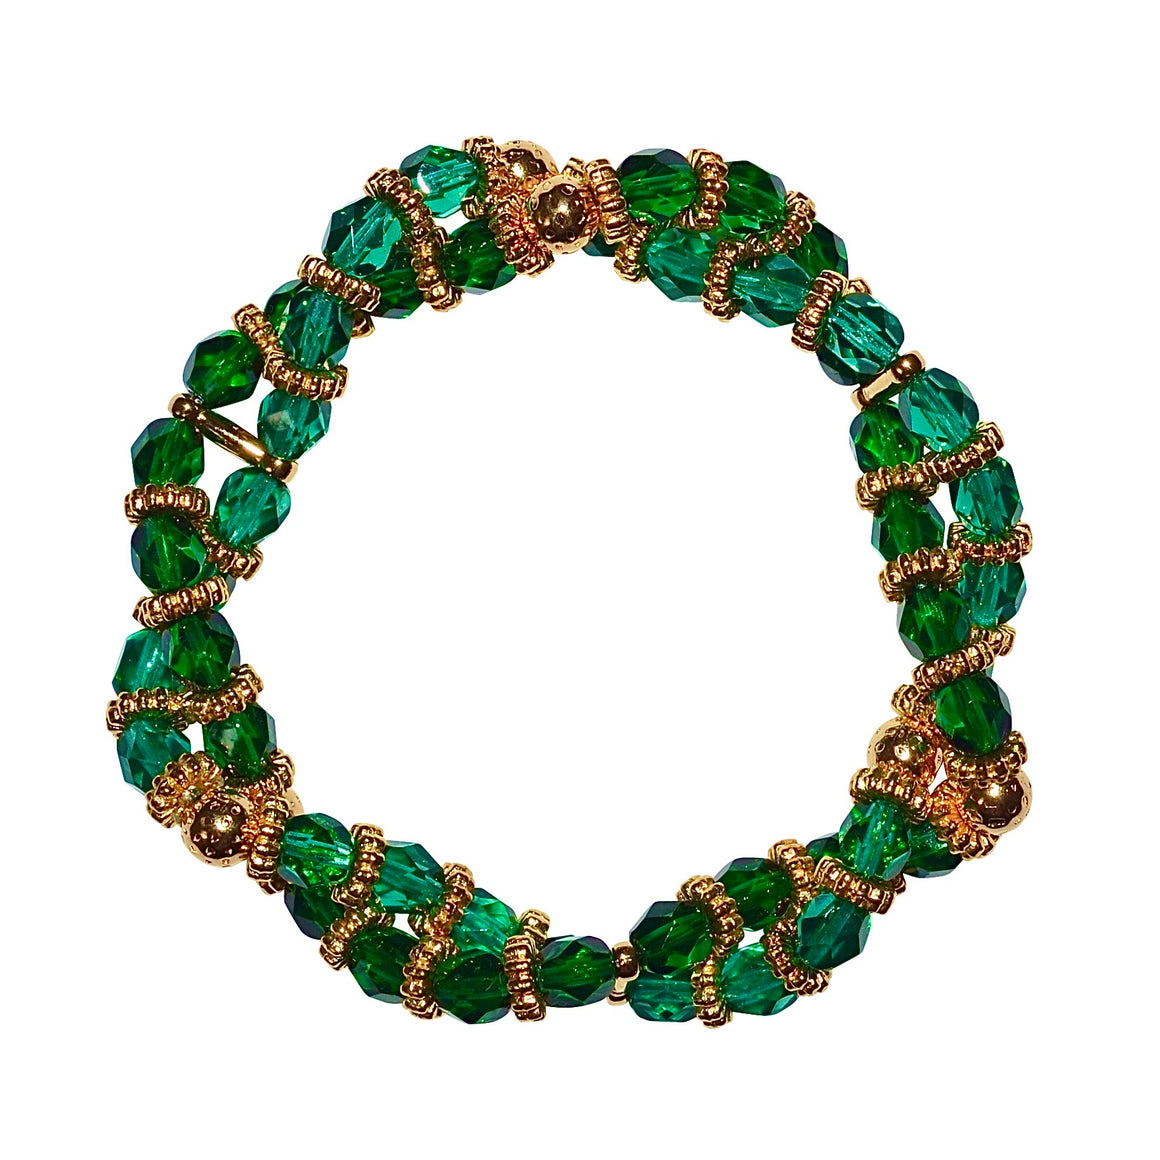 BIANCA LUCITE TWISTED BRACELET IN EMERALD